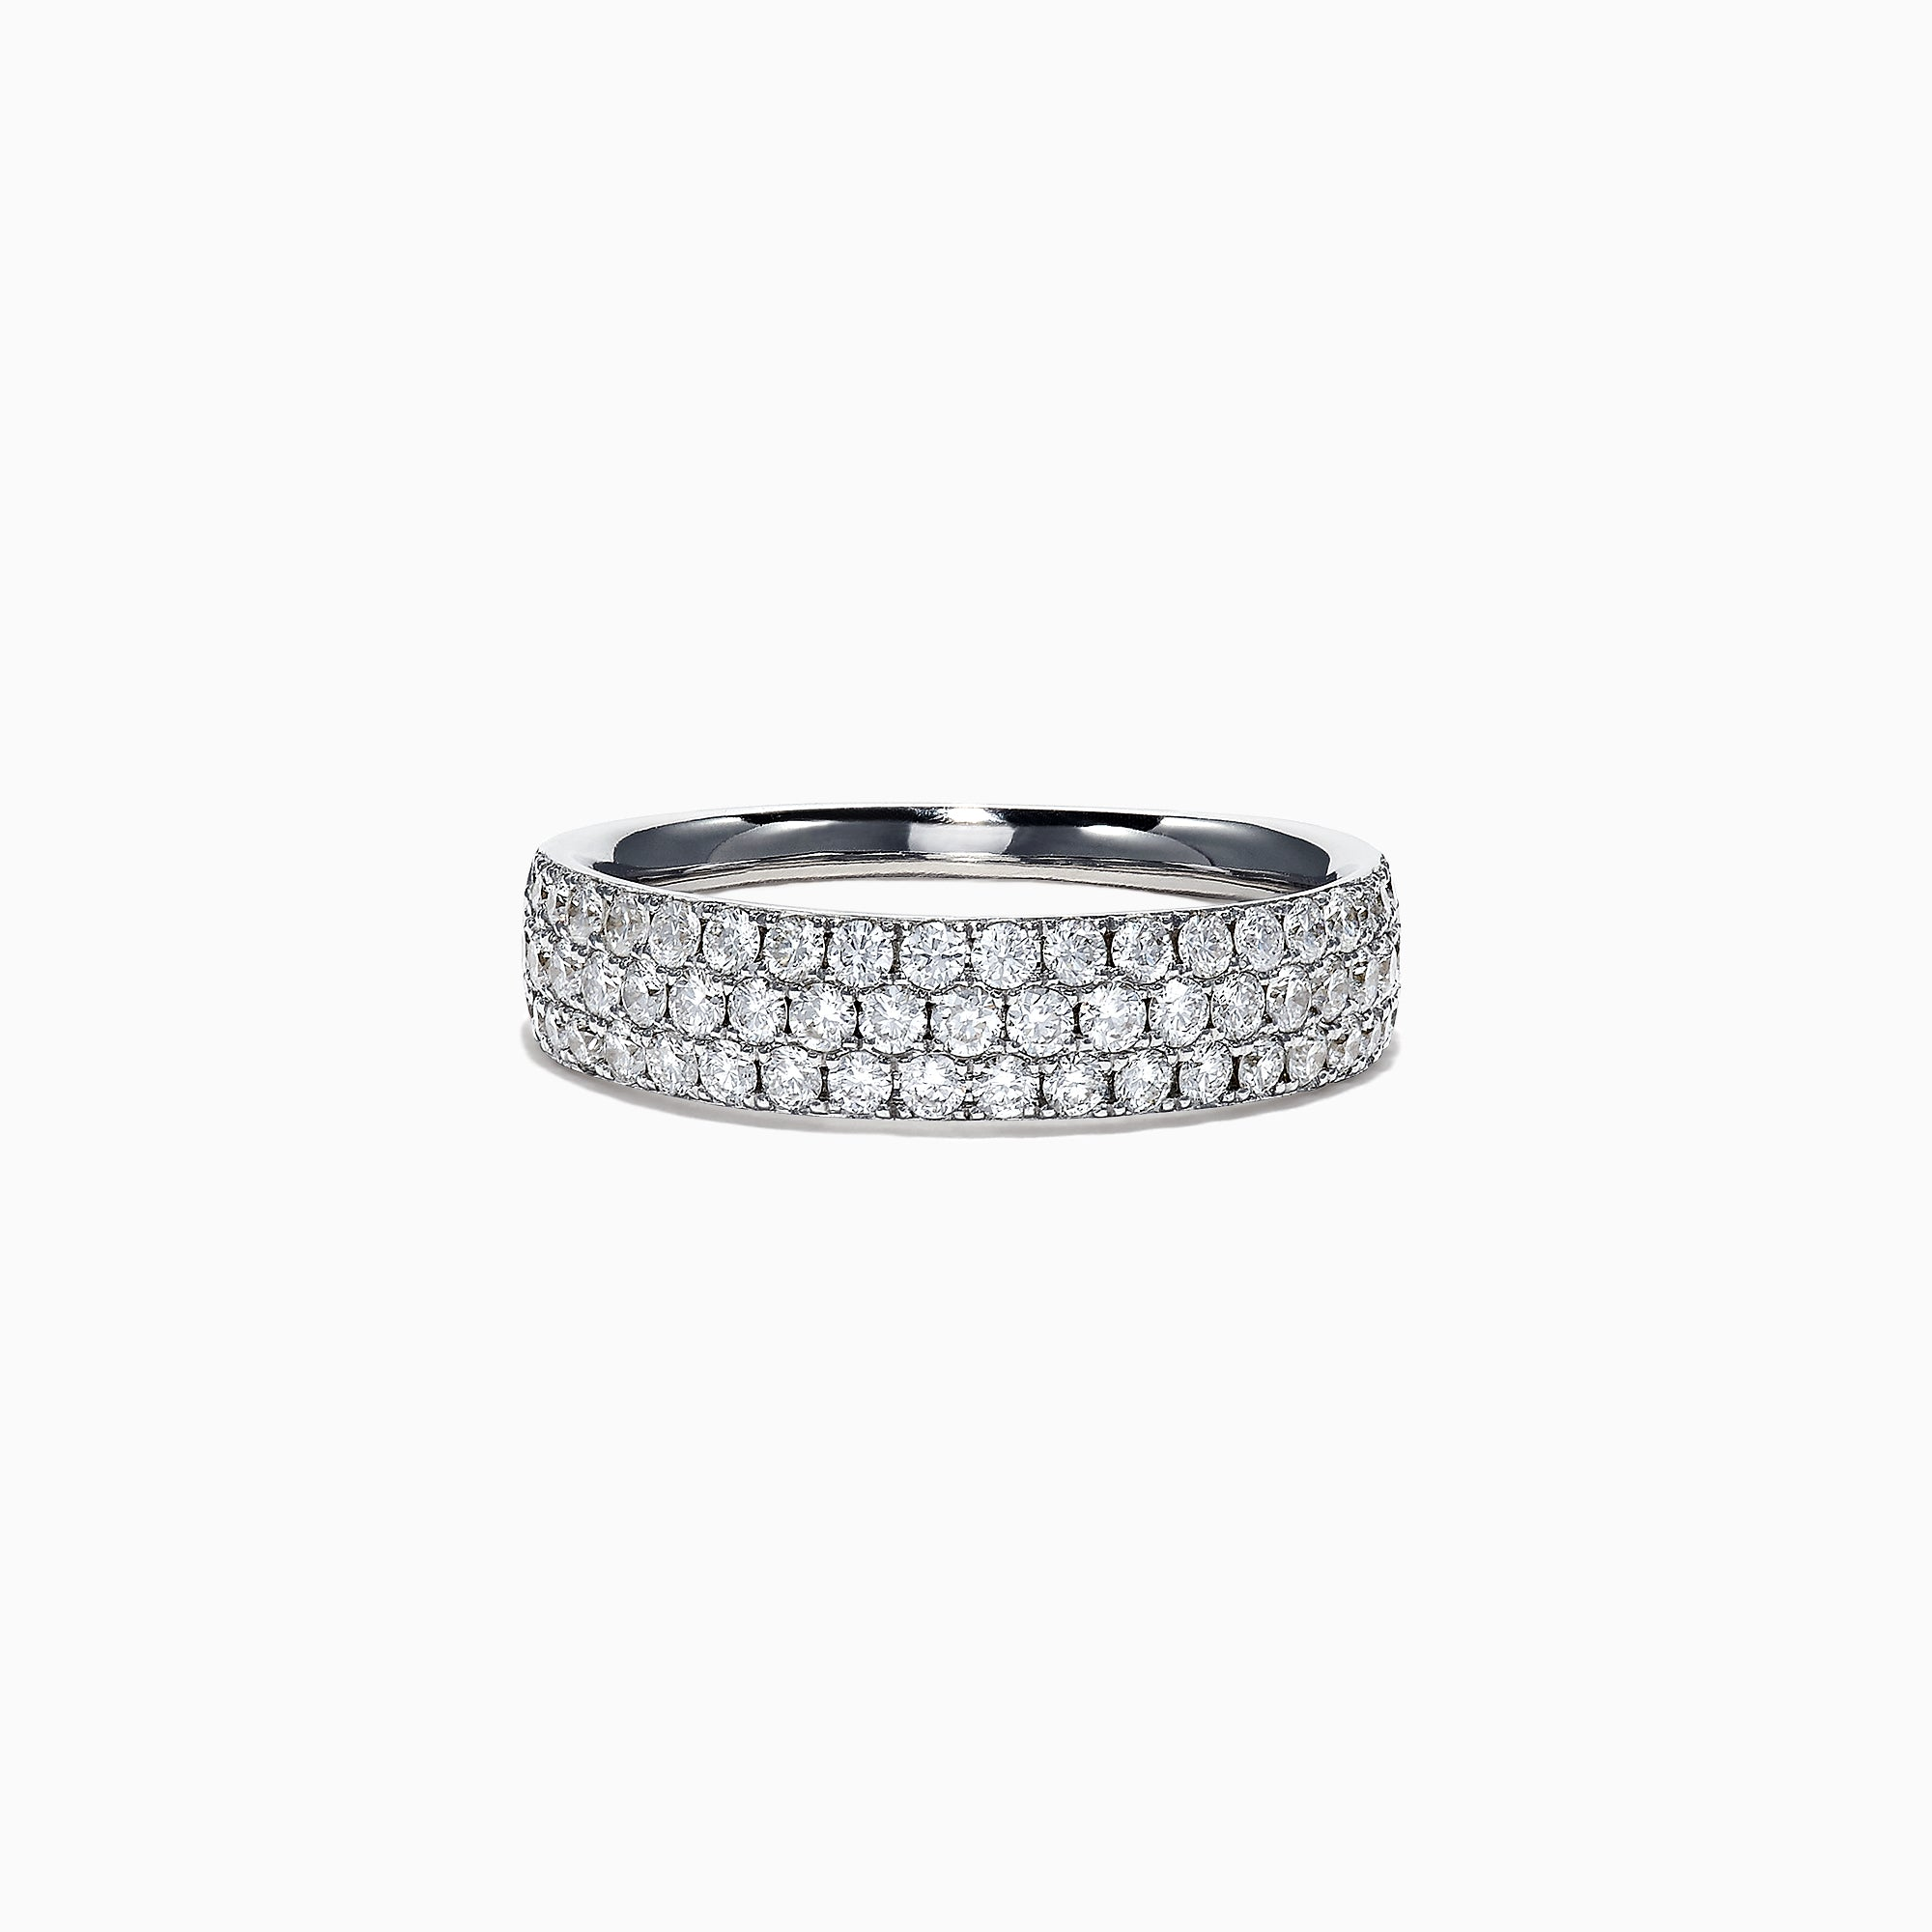 Effy Pave Classica 14K White Gold Diamond Band Ring, 0.84 TCW